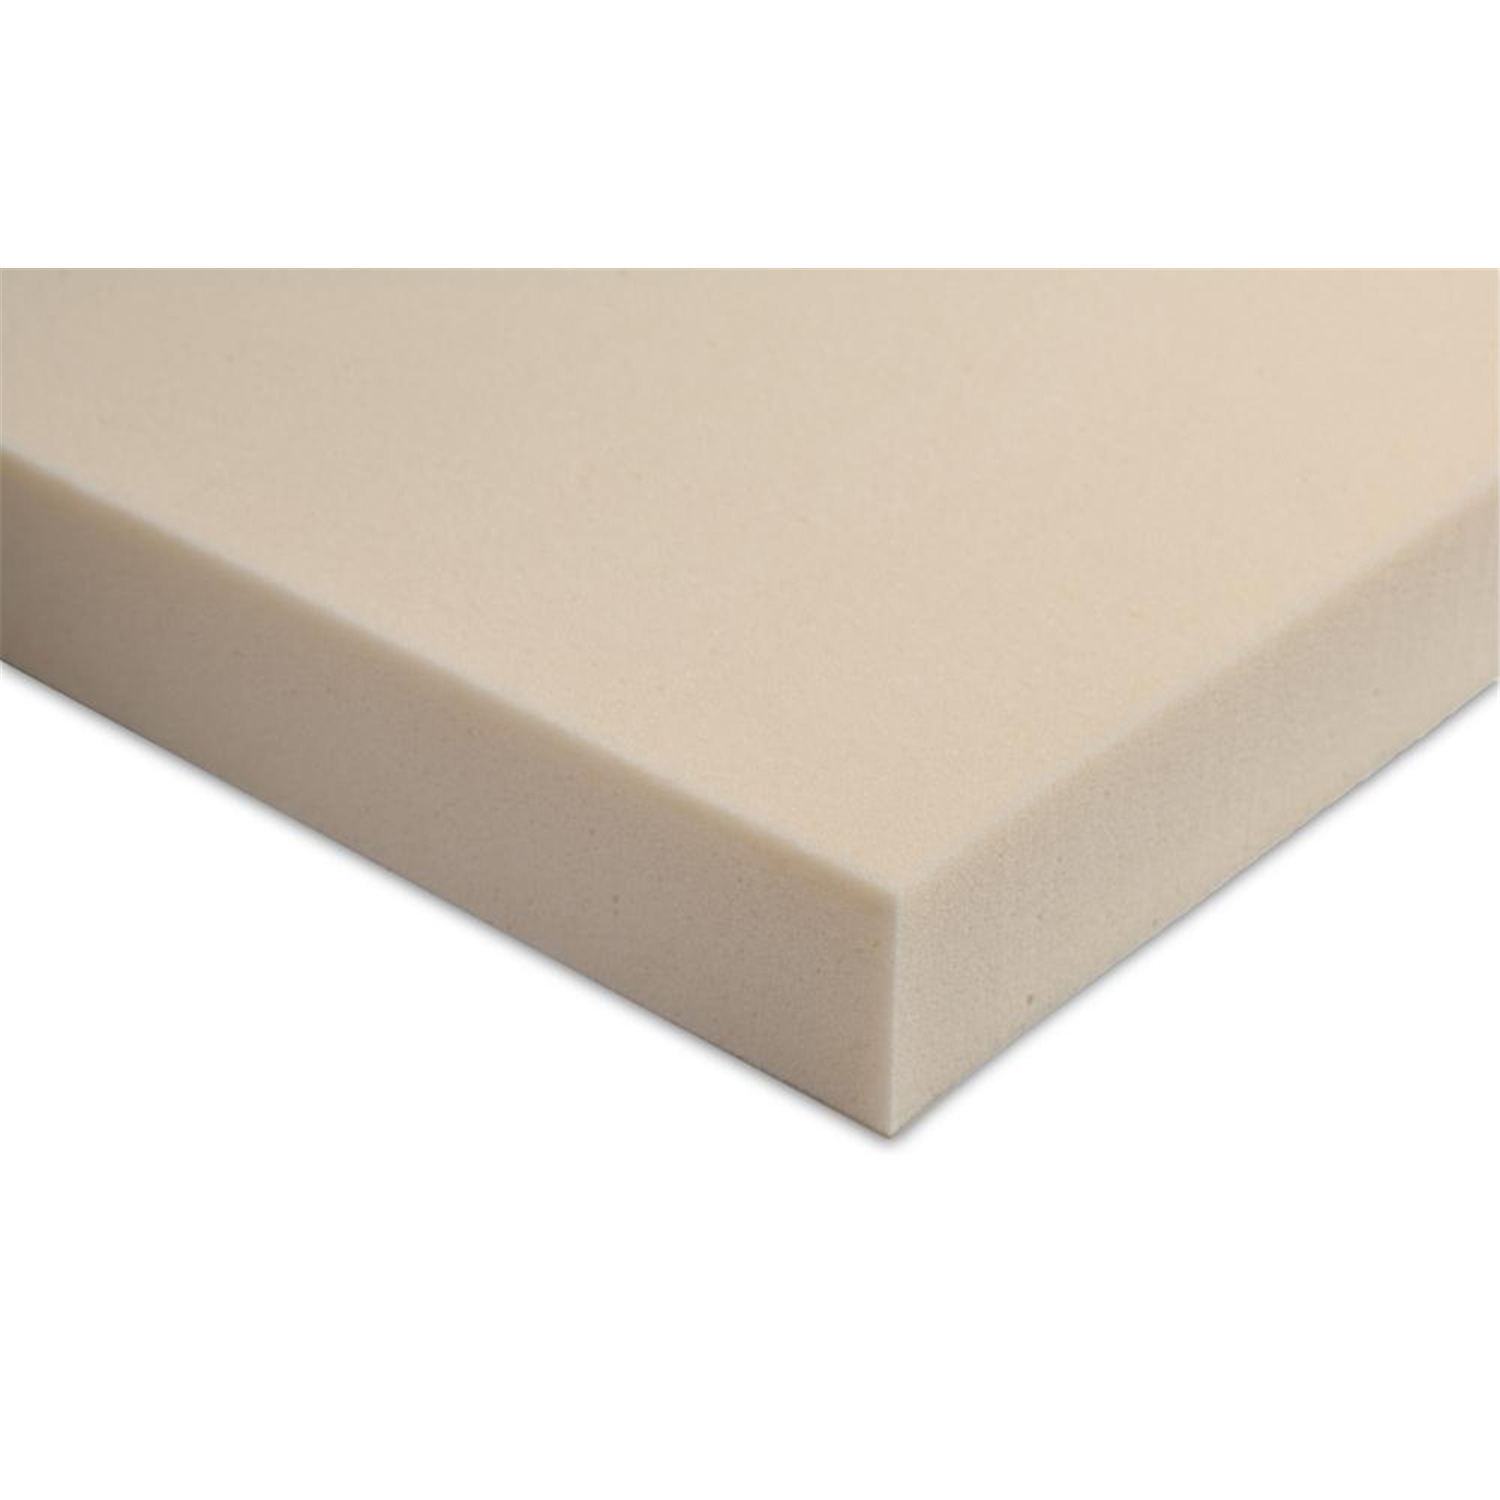 Memory Foam Mattress Topper 2 5 Lb Ojcommerce